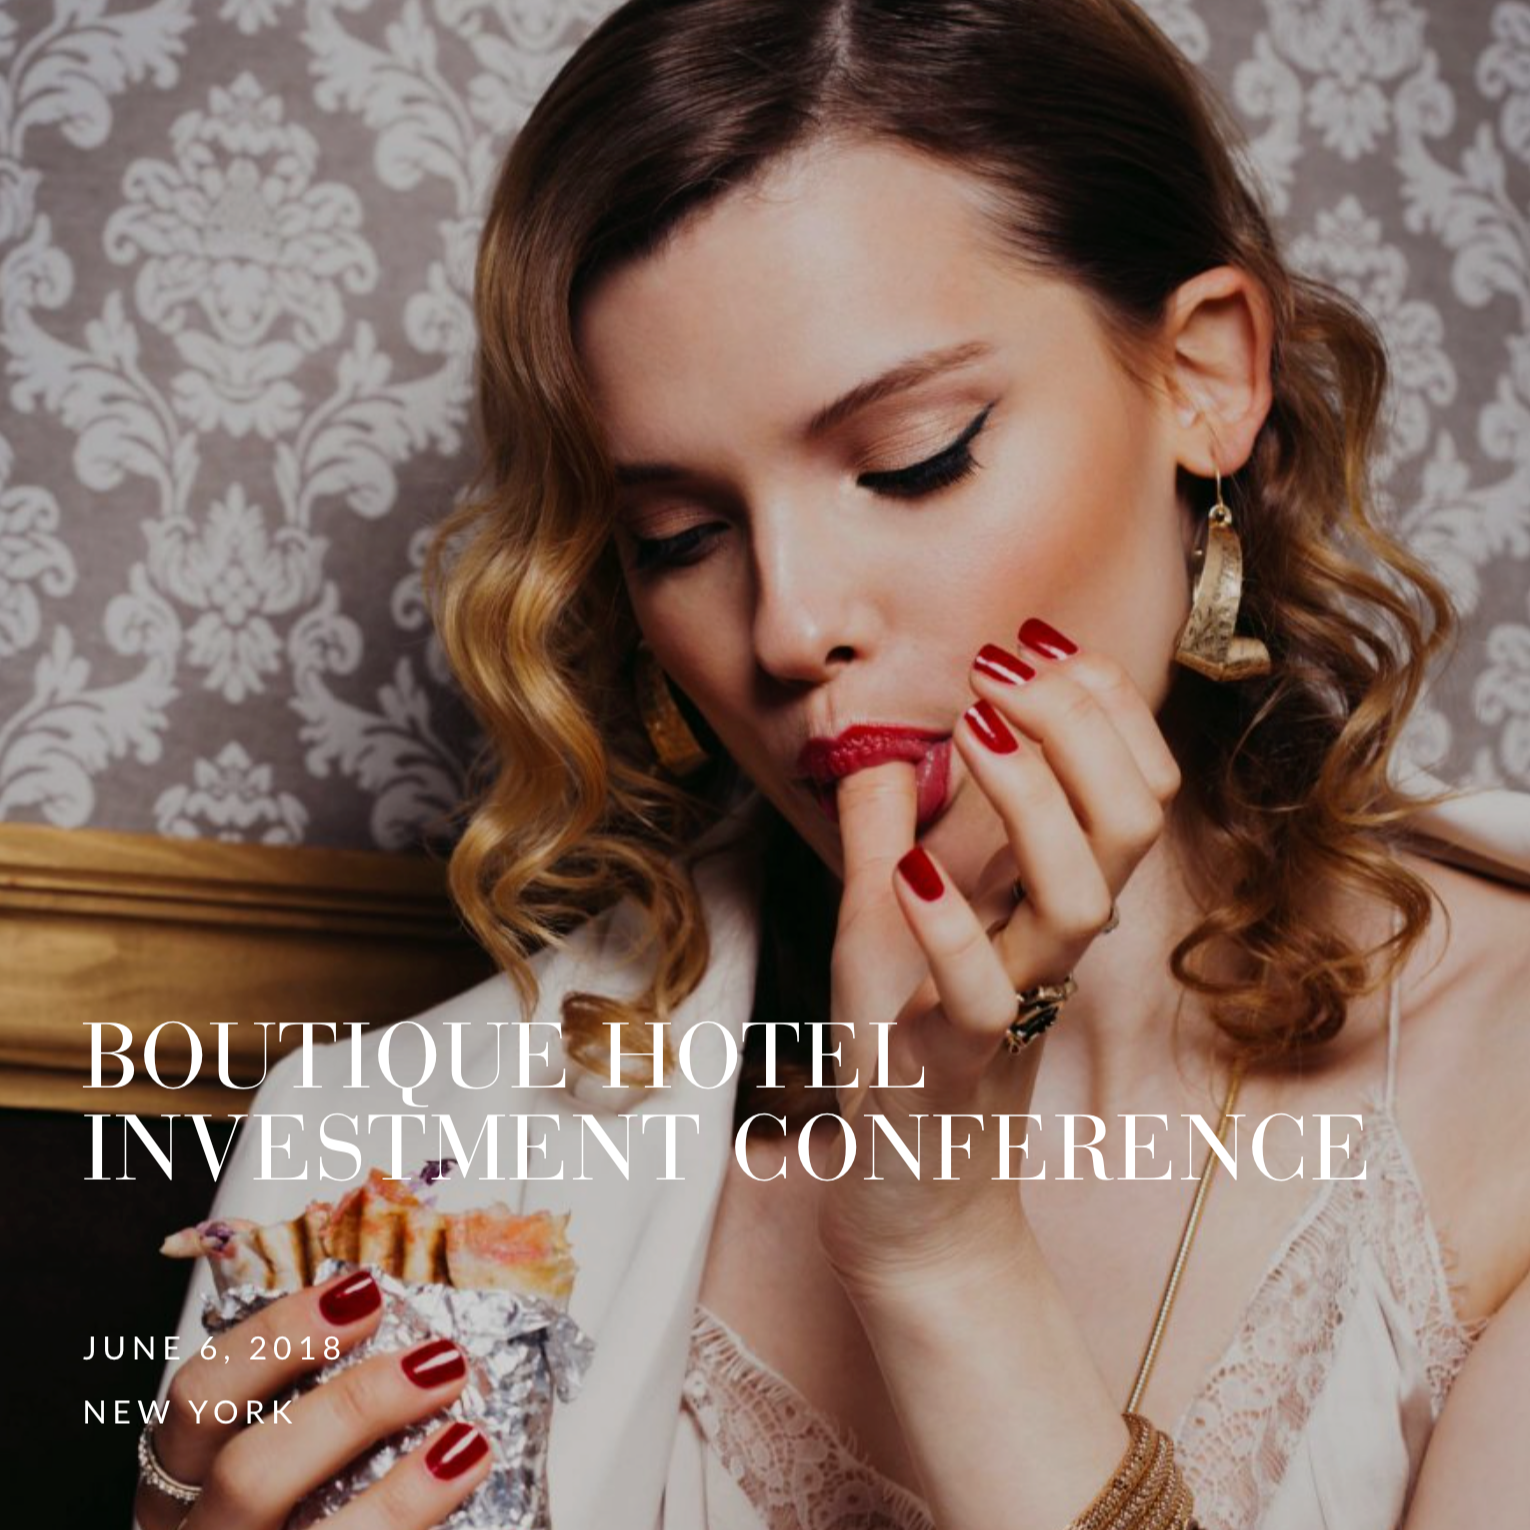 fashion-editorial-glamour-model-eating-classy-style-rich.png